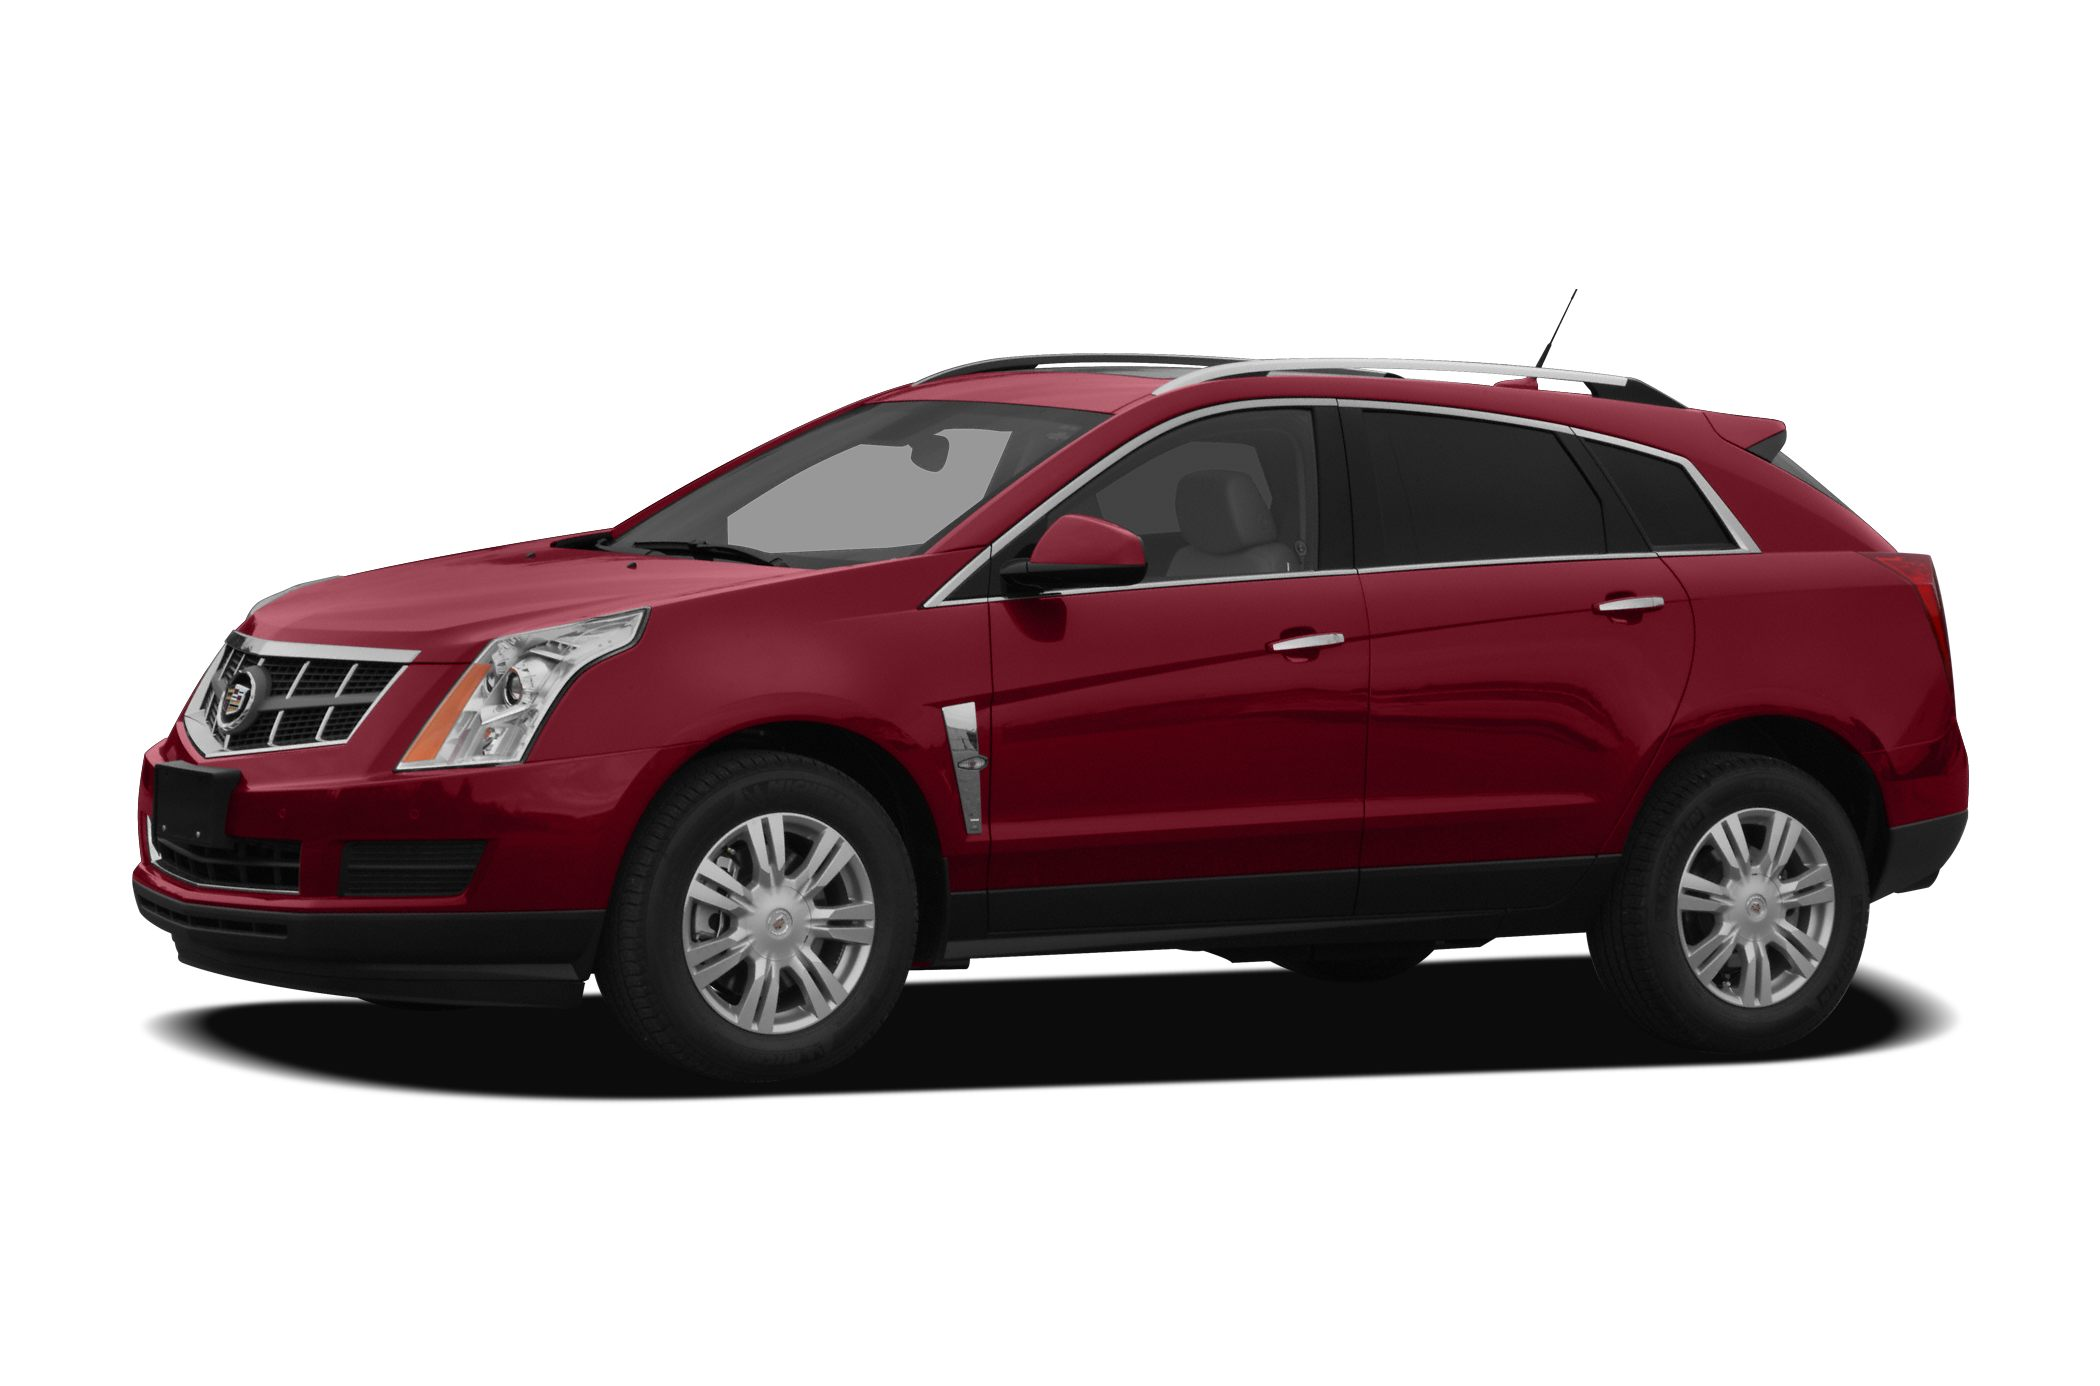 2012 Cadillac SRX Luxury Collection SUV for sale in Stuart for $27,997 with 30,790 miles